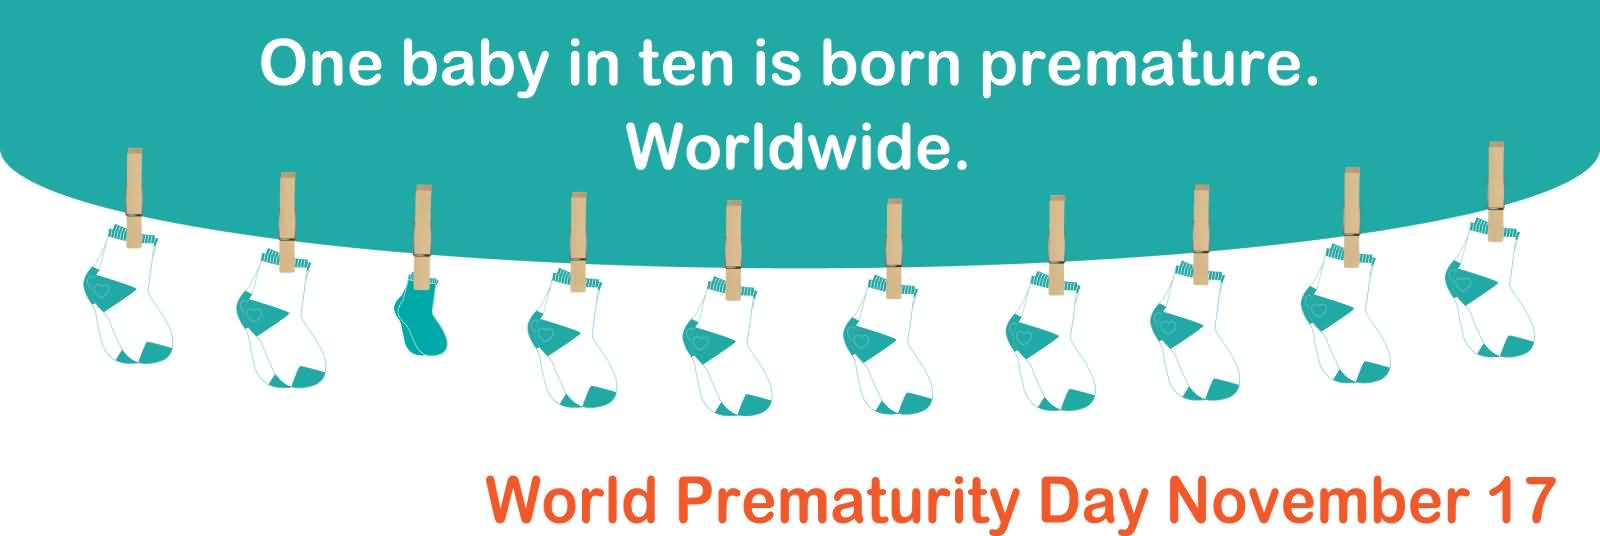 One Baby Is Ten Is Born Premature Worldwide. World Prematurity Day Facebook Cover Picture